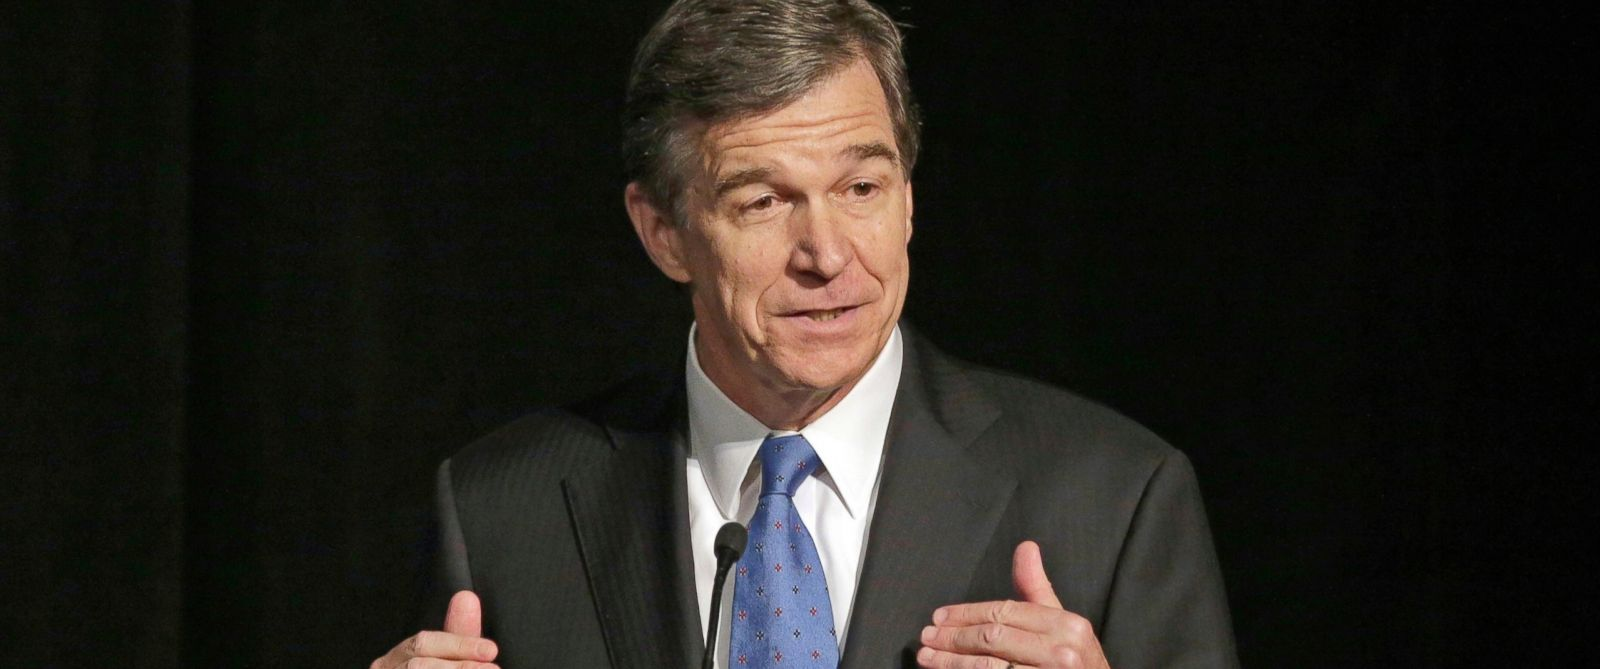 PHOTO: In this June 24, 2016, file photo, North Carolina Attorney General Roy Cooper speaks during a forum in Charlotte, North Carolina.